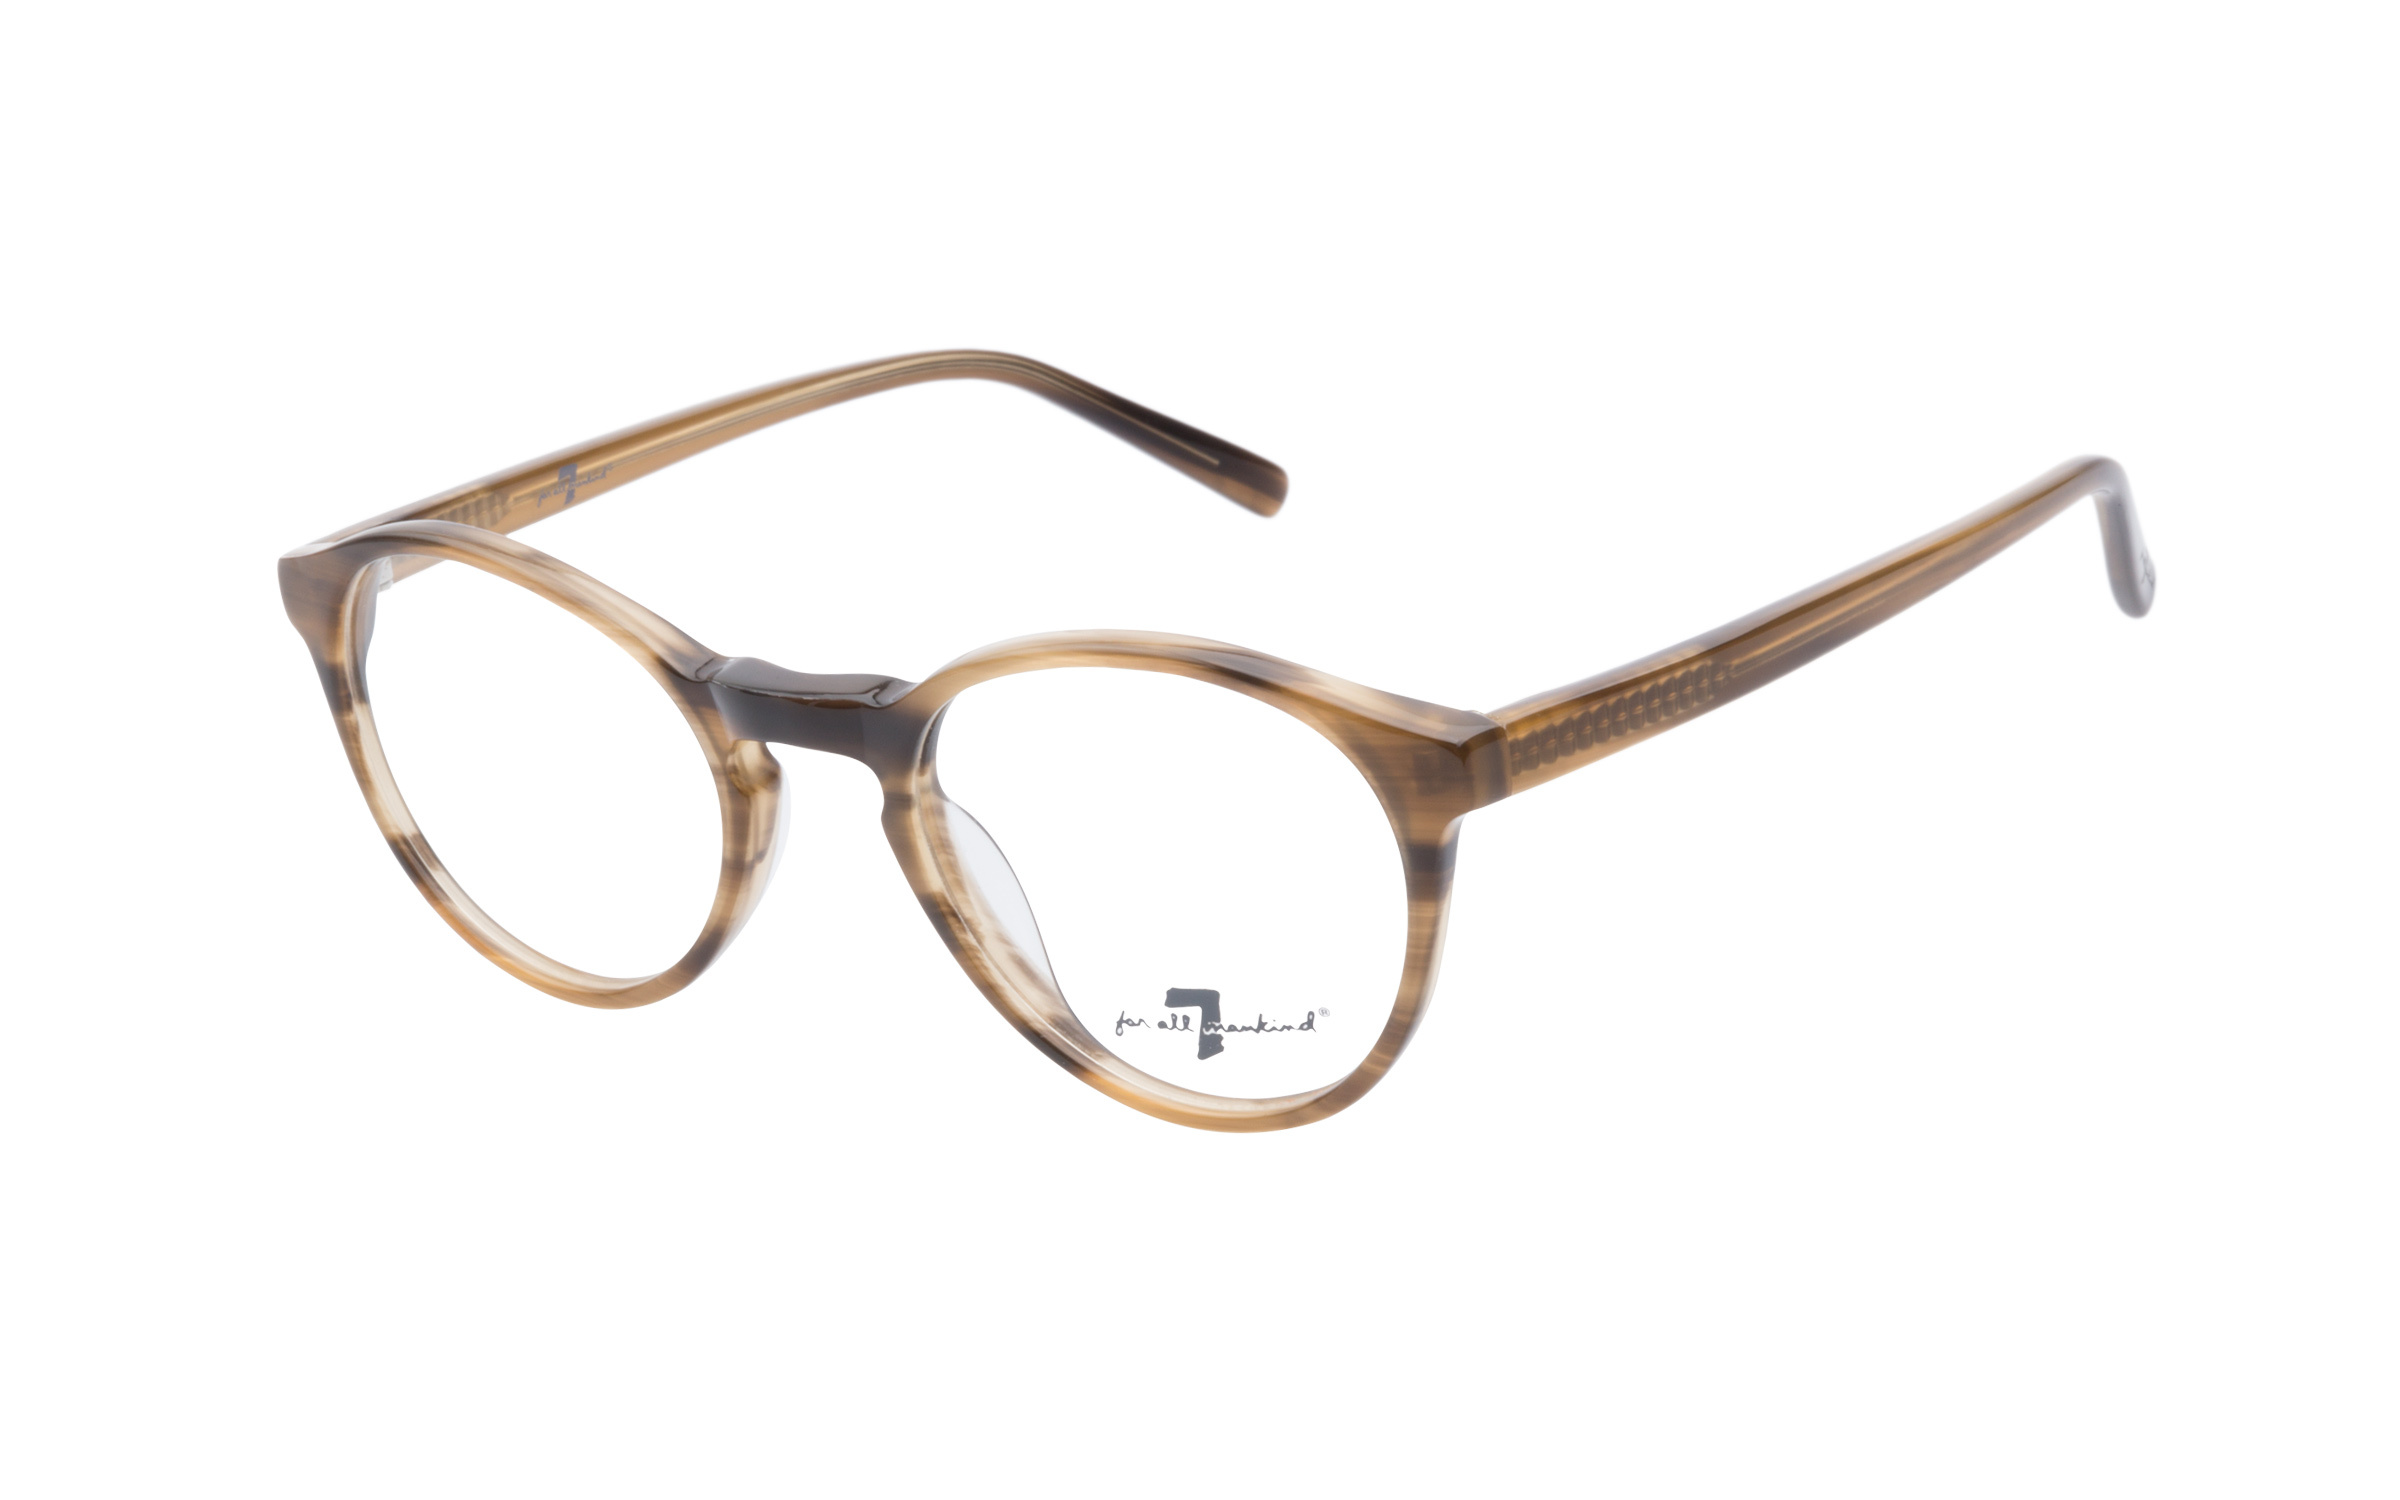 7 for All Mankind Glasses Vintage Tortoise Acetate Online Clearly